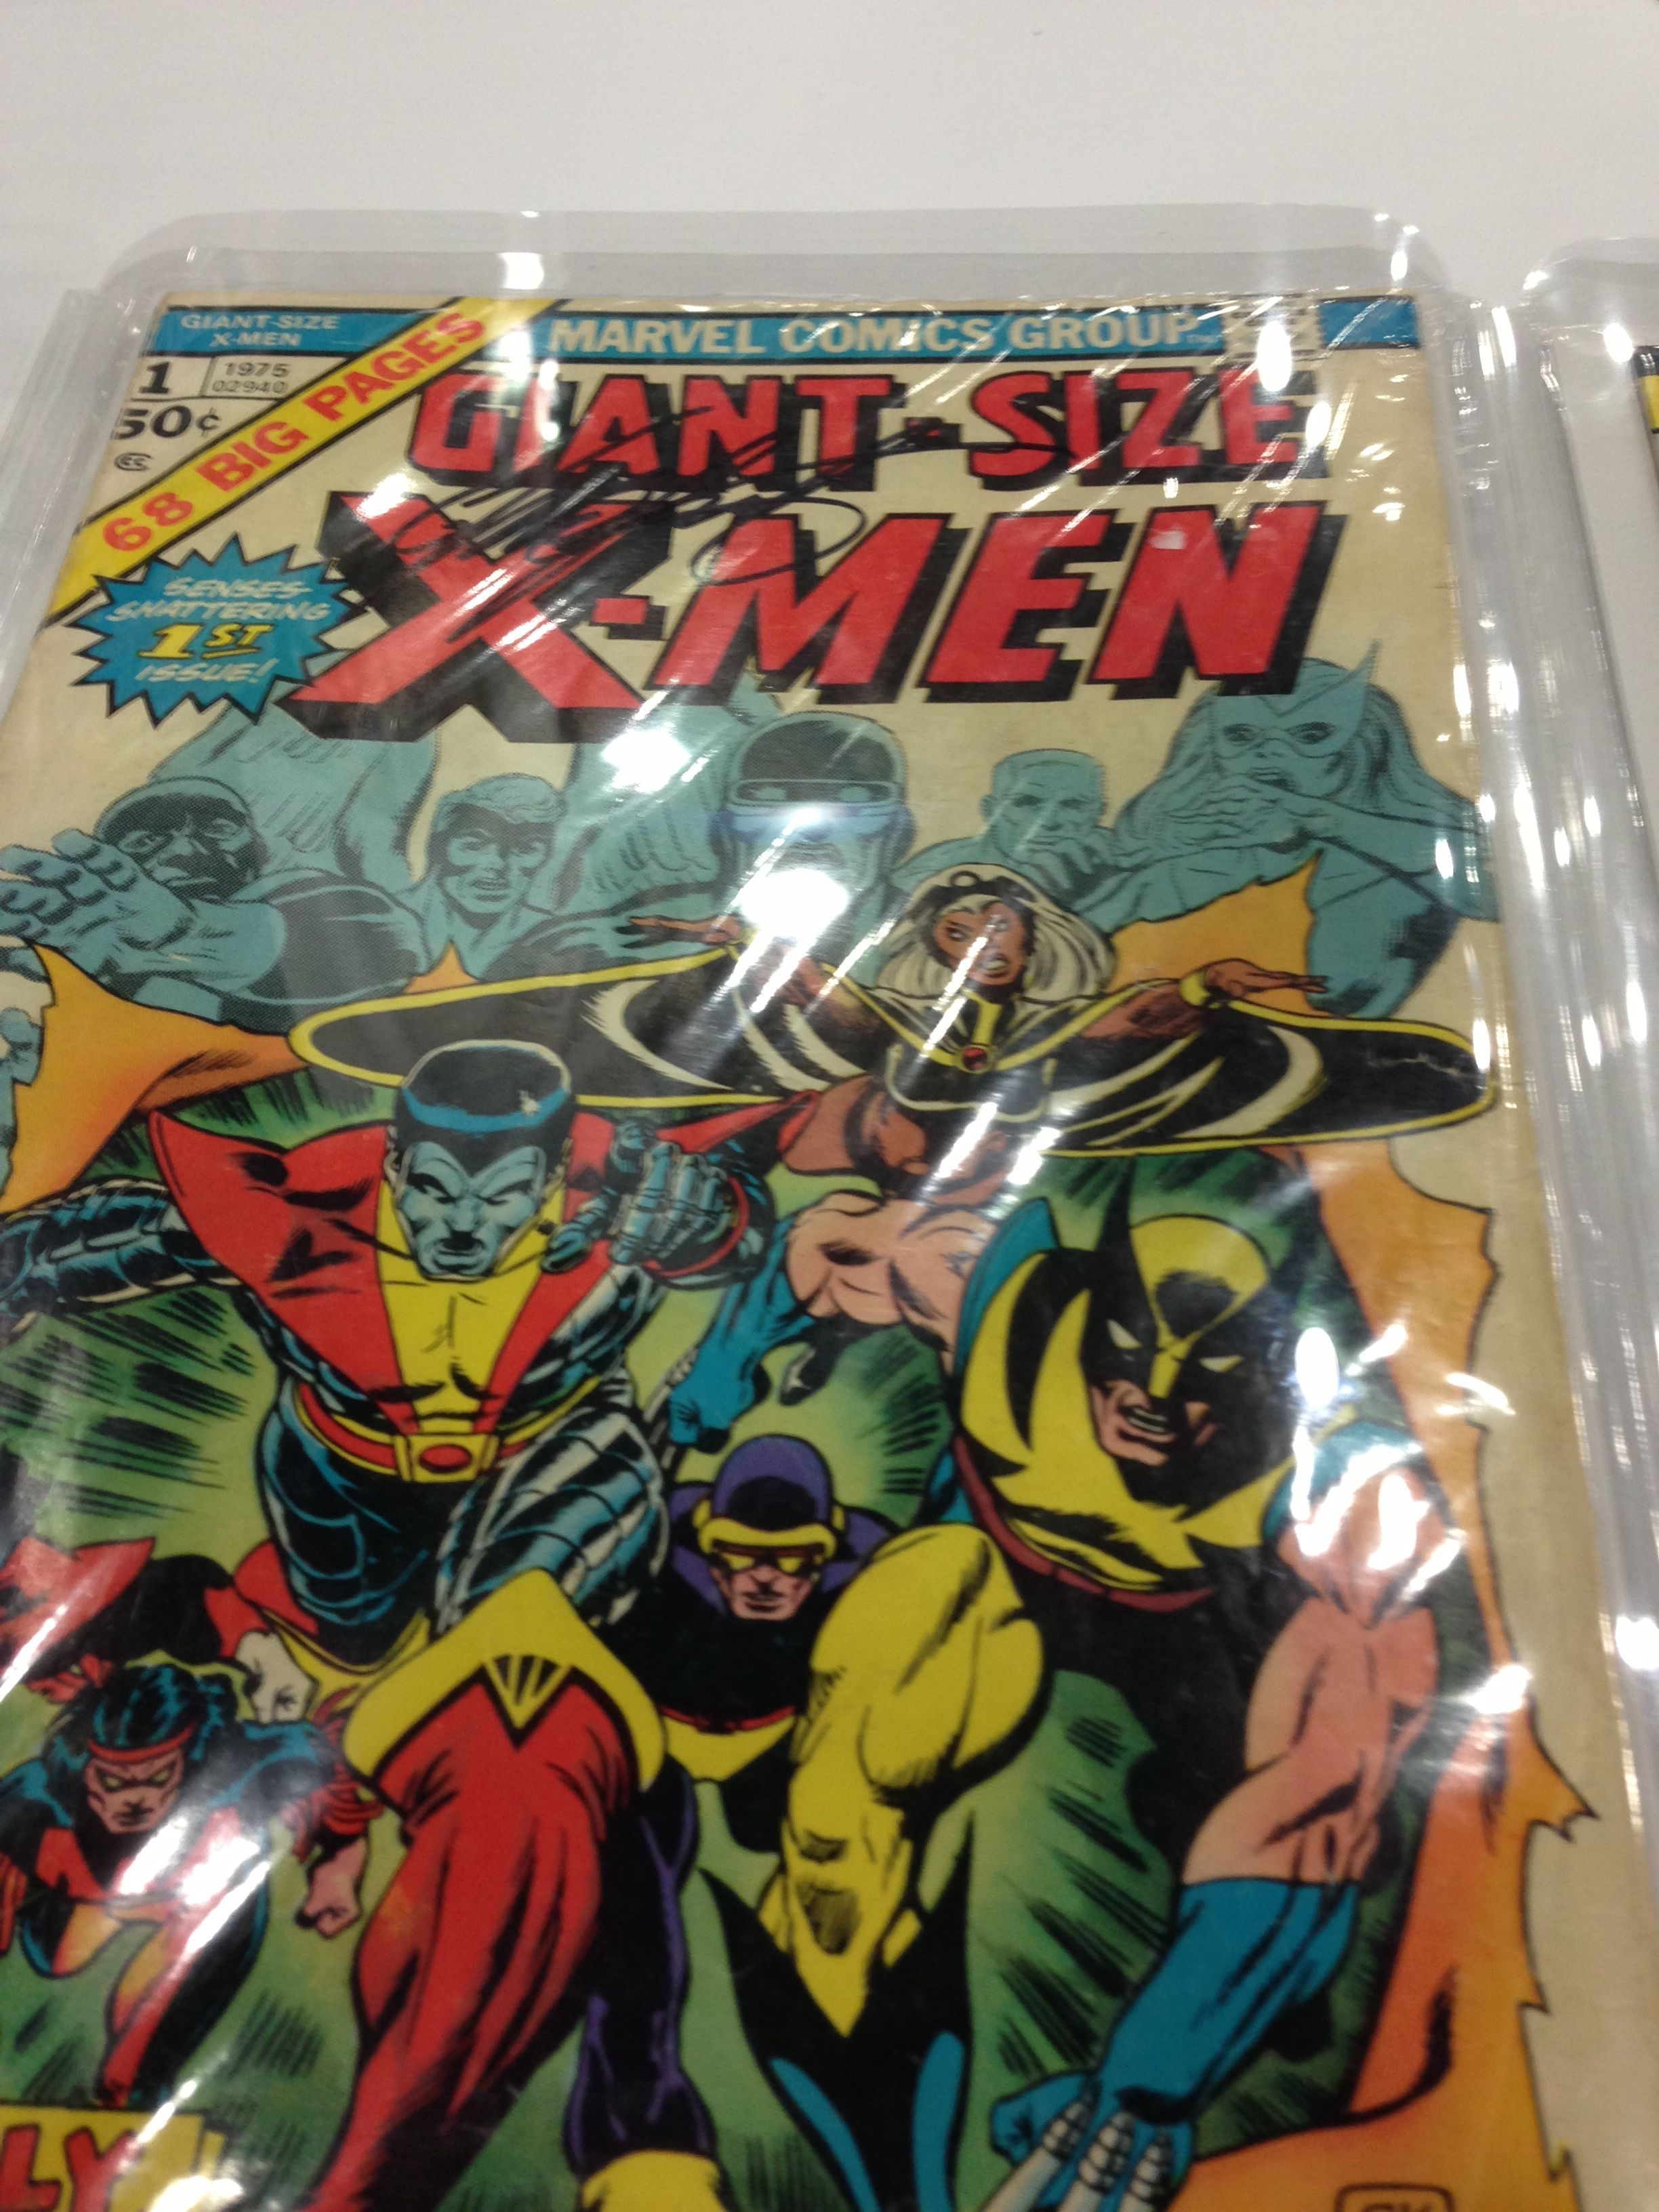 Giant Size X Men 001 Signed By Plot Developer Chris Claremont 1st Appearance Of The New X Men Colossus Nightcrawler Nightcrawler Colossus Comic Book Cover